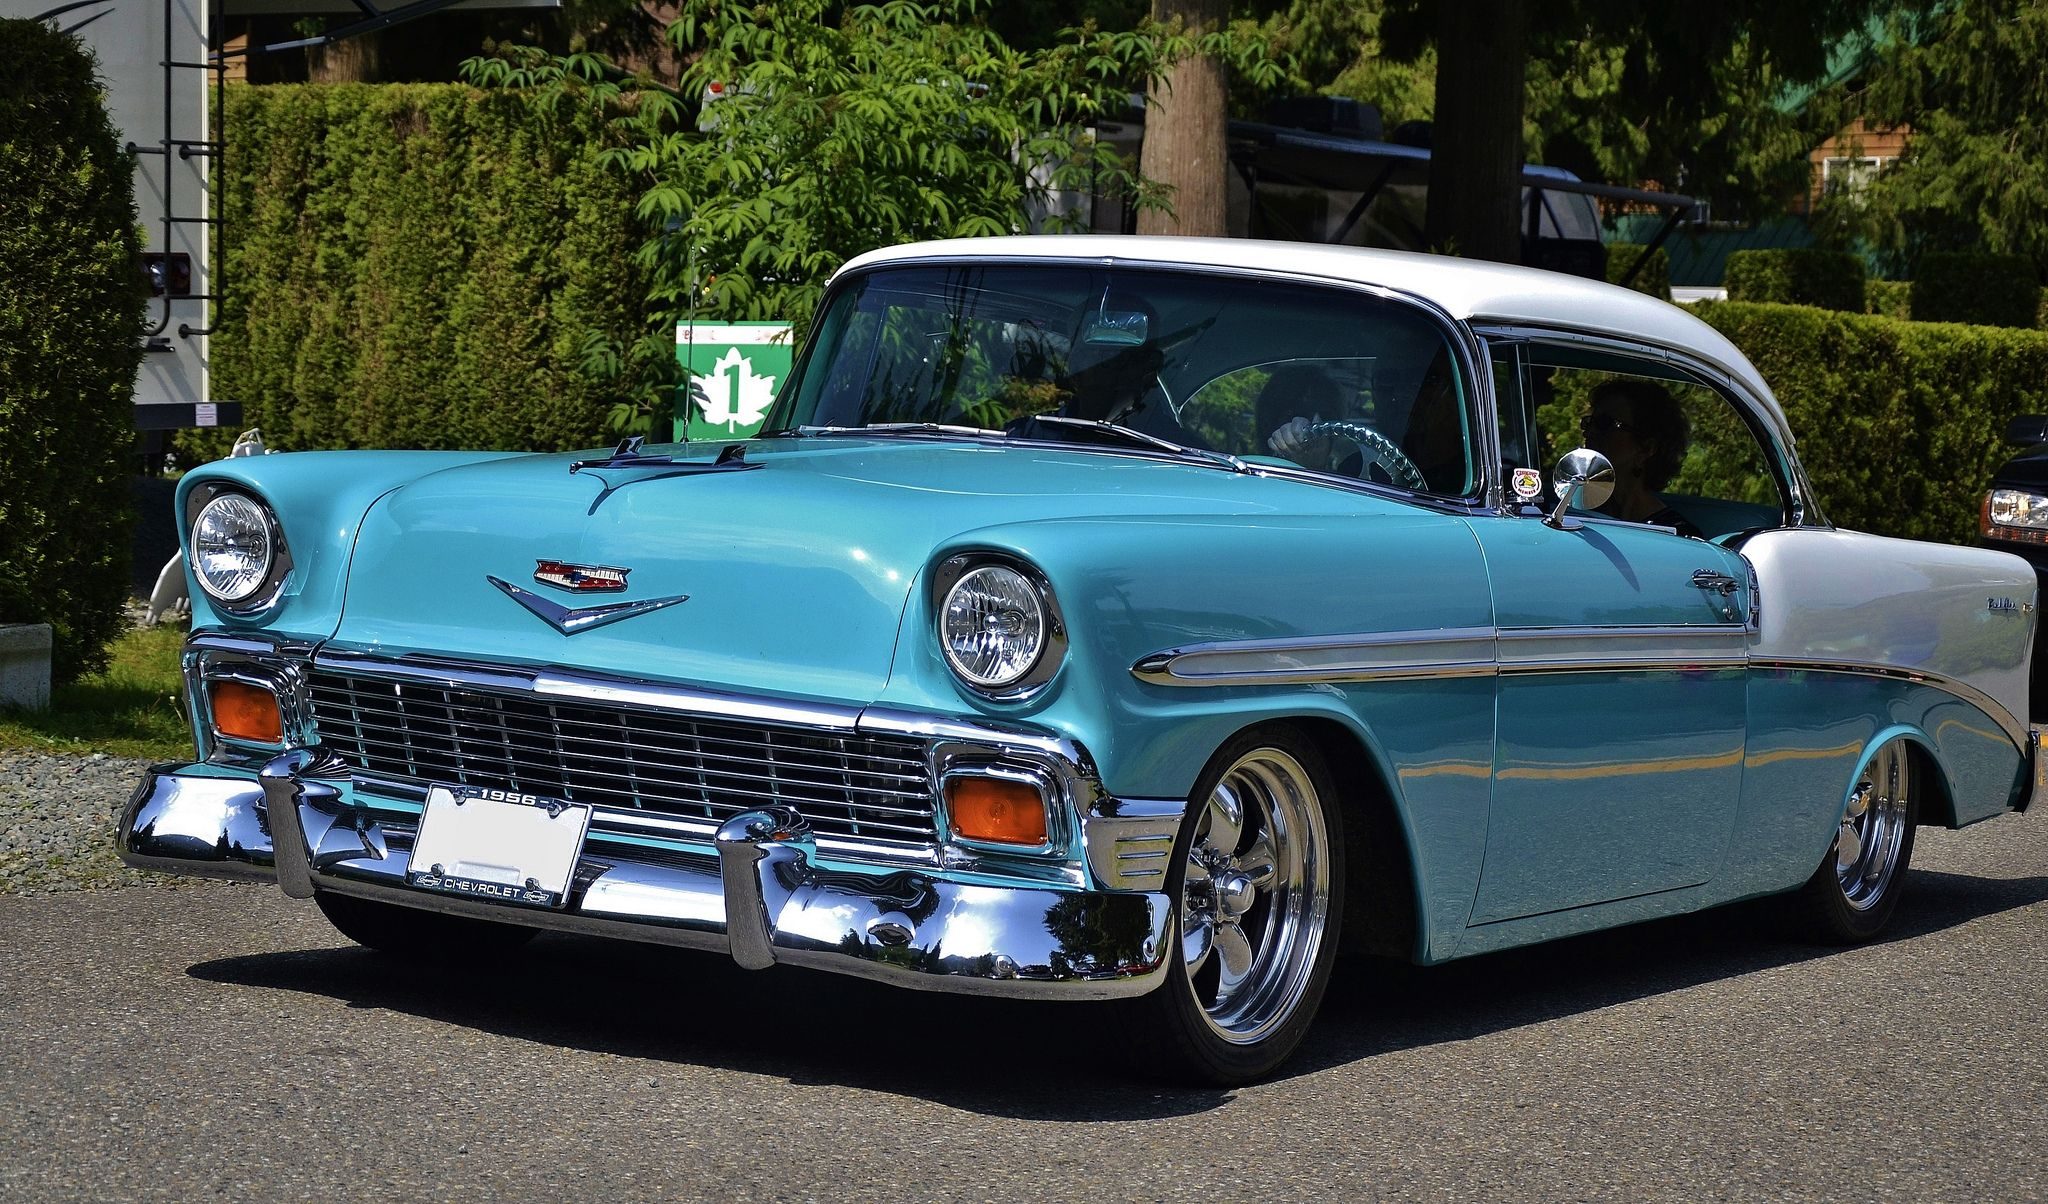 1956 Chevrolet Bel Air Sport Coupe En 2020 Coches Clasicos